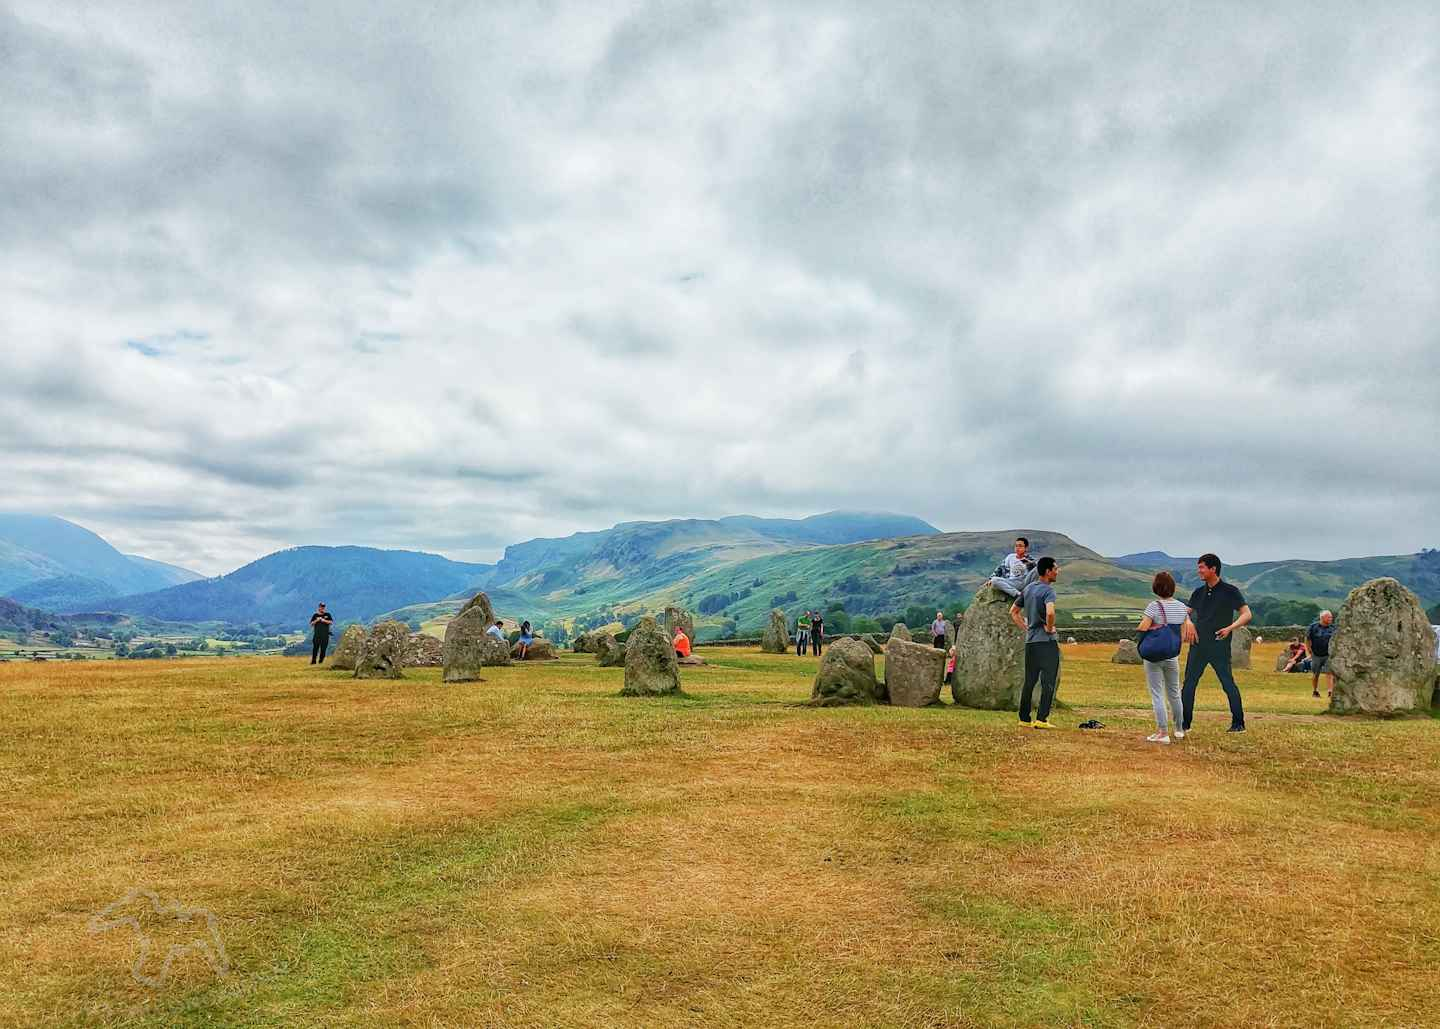 I only had my phone and 15 minutes, so how did I get some nice photos of Castlerigg Stone Circle in the Lake District? Photography tips and visitor info. Taking photos at Castlerigg Stone Circle in the Lake District on Falcondale Life blog. Image description: wide shot of Castlerigg Stone Circle.